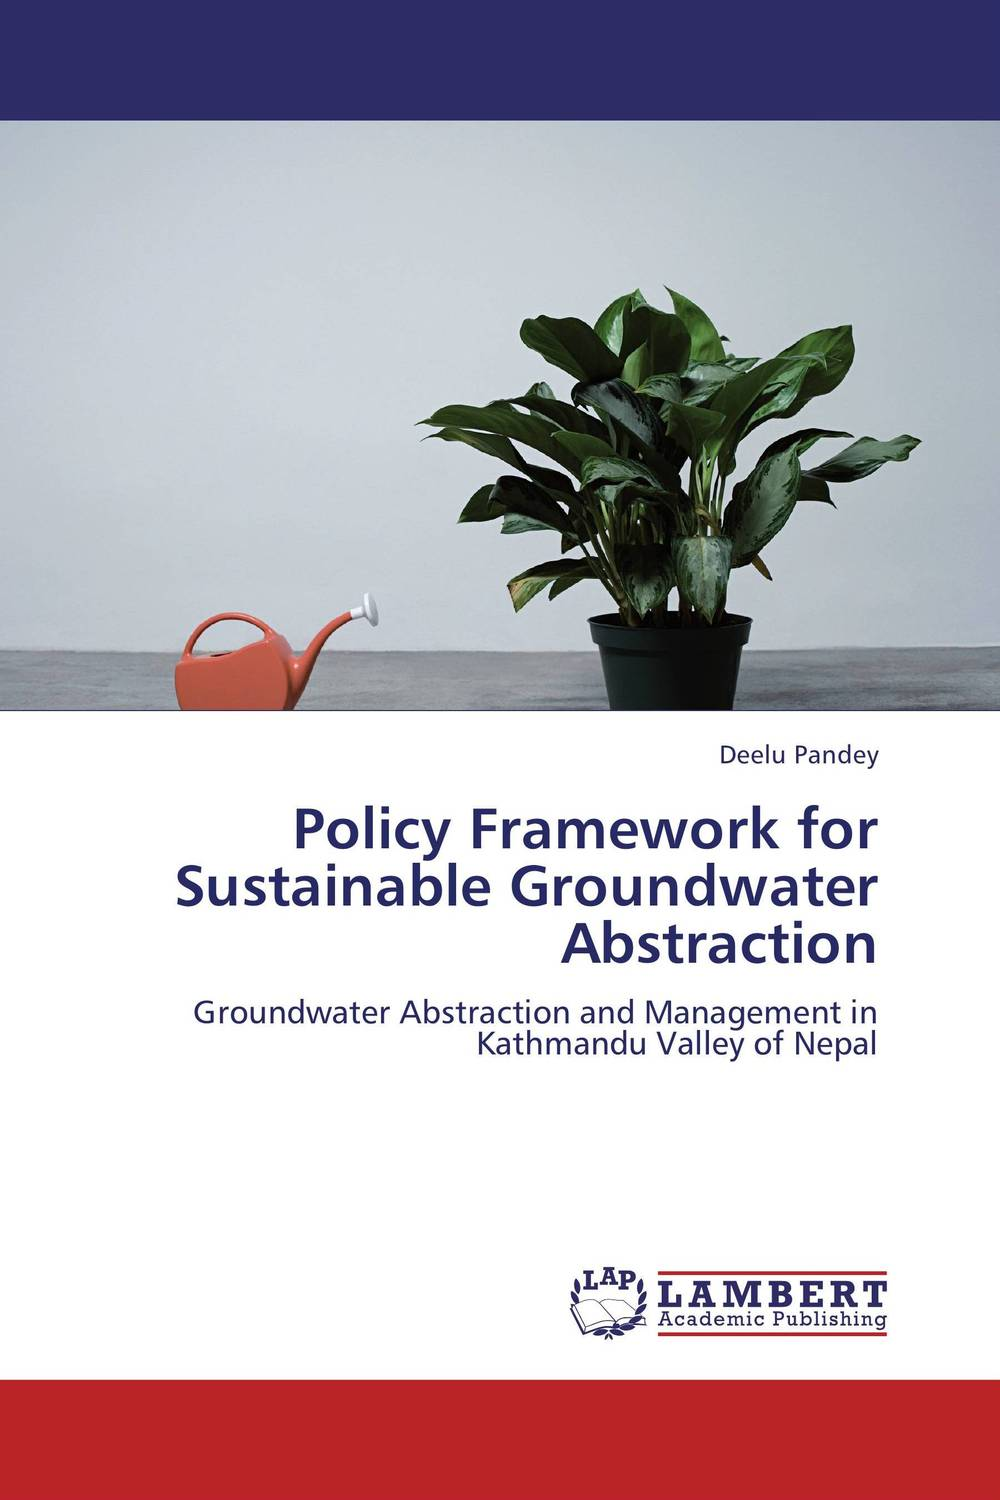 Policy Framework for Sustainable Groundwater Abstraction